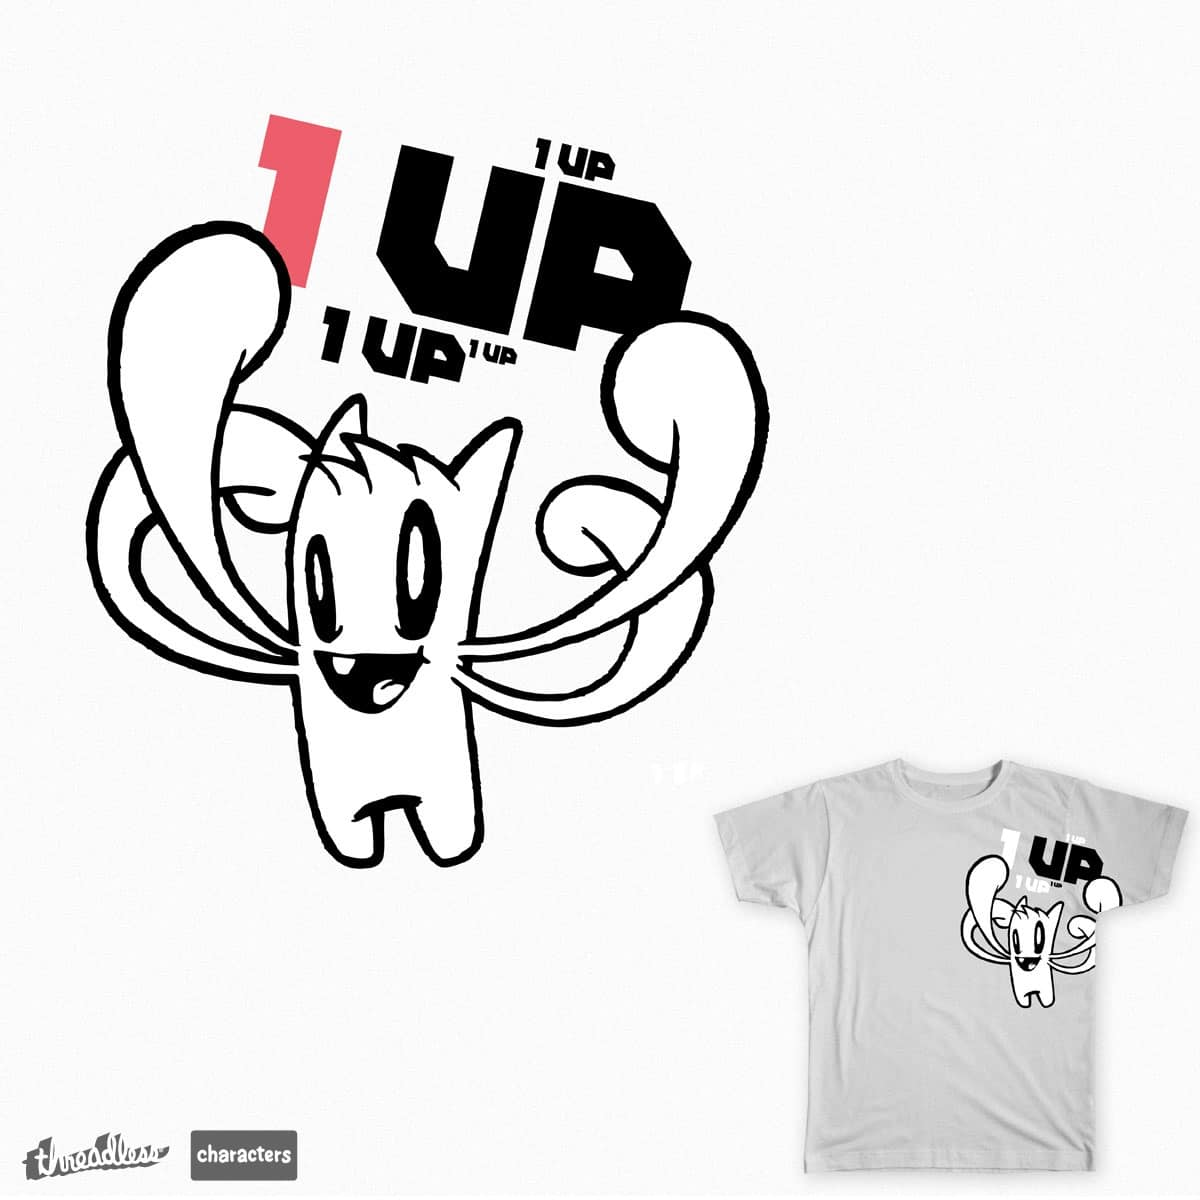 1up by ghostjunk on Threadless